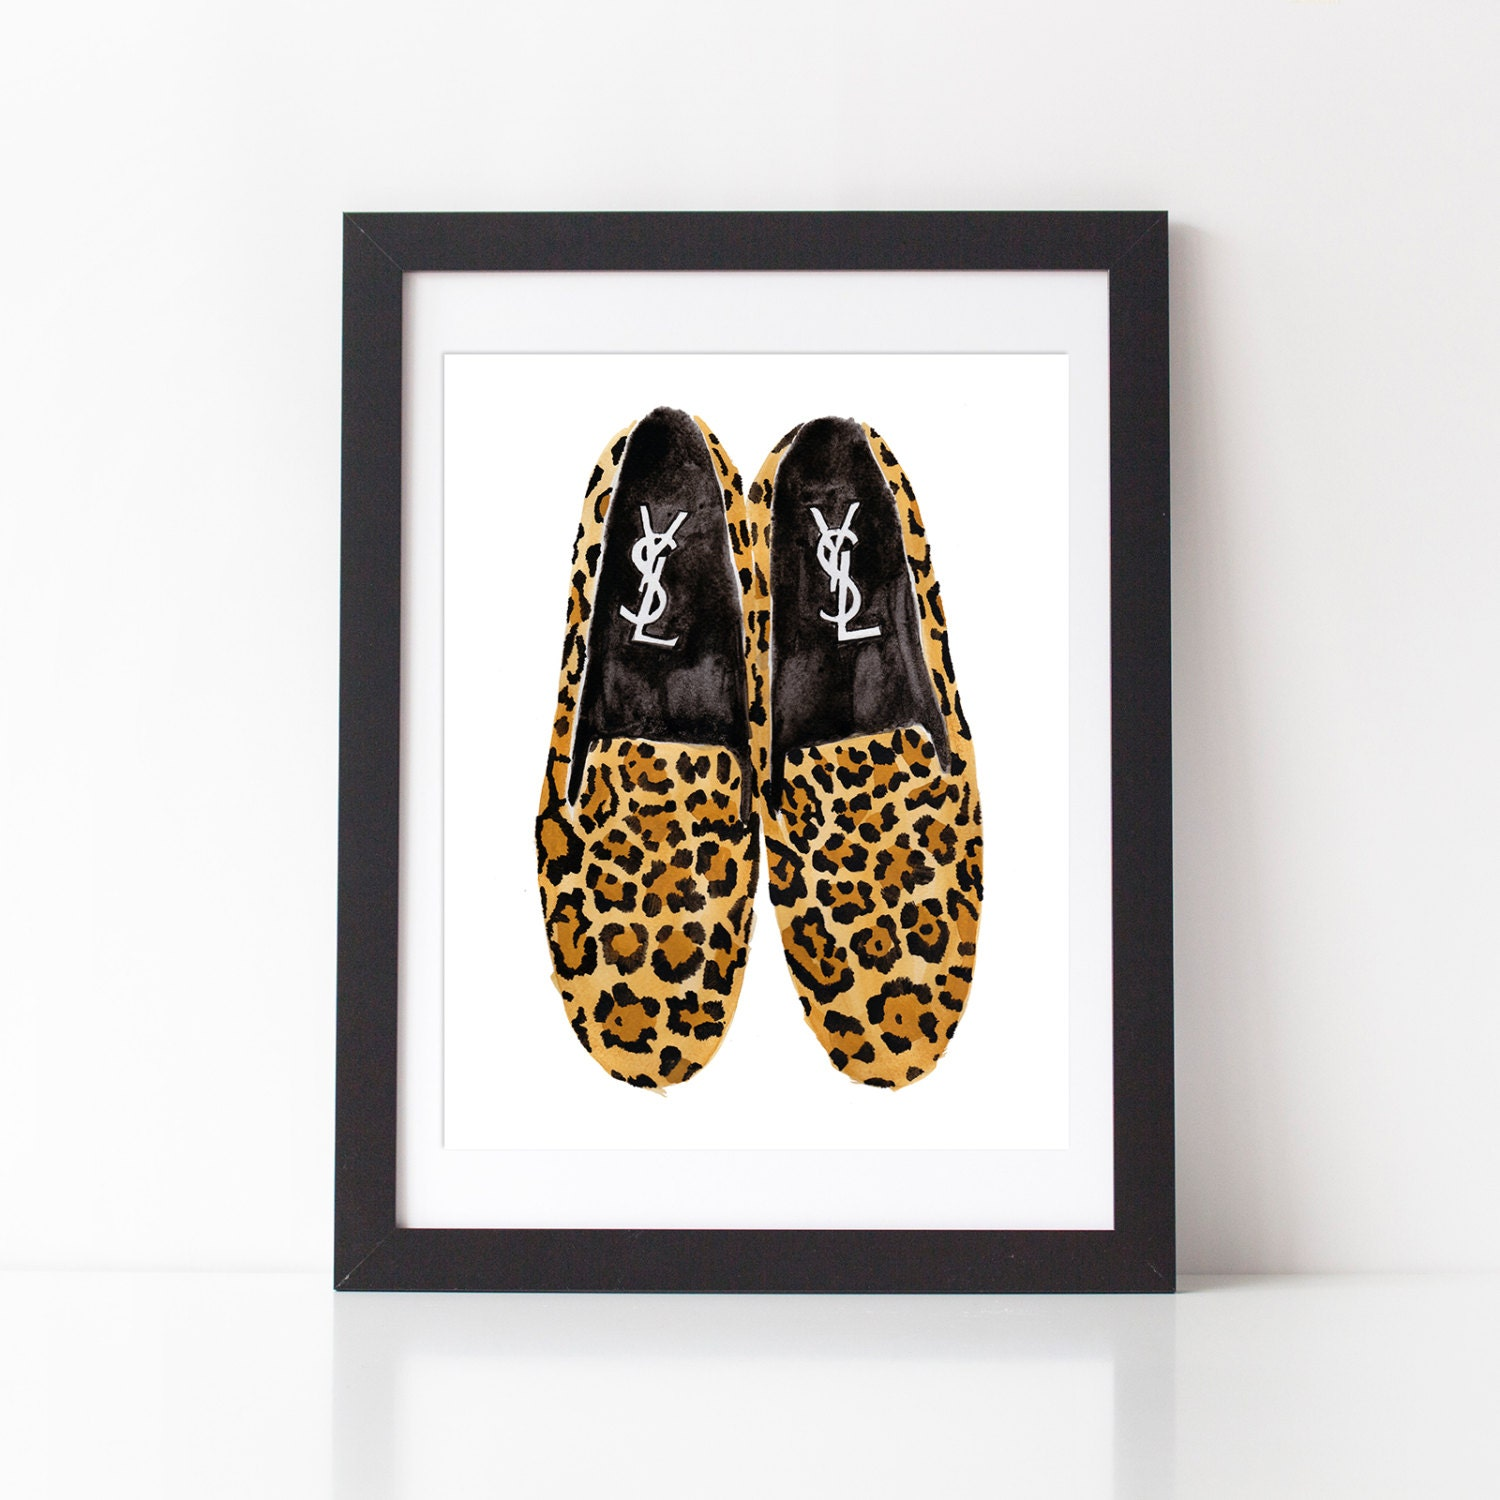 Popular items for ysl on Etsy